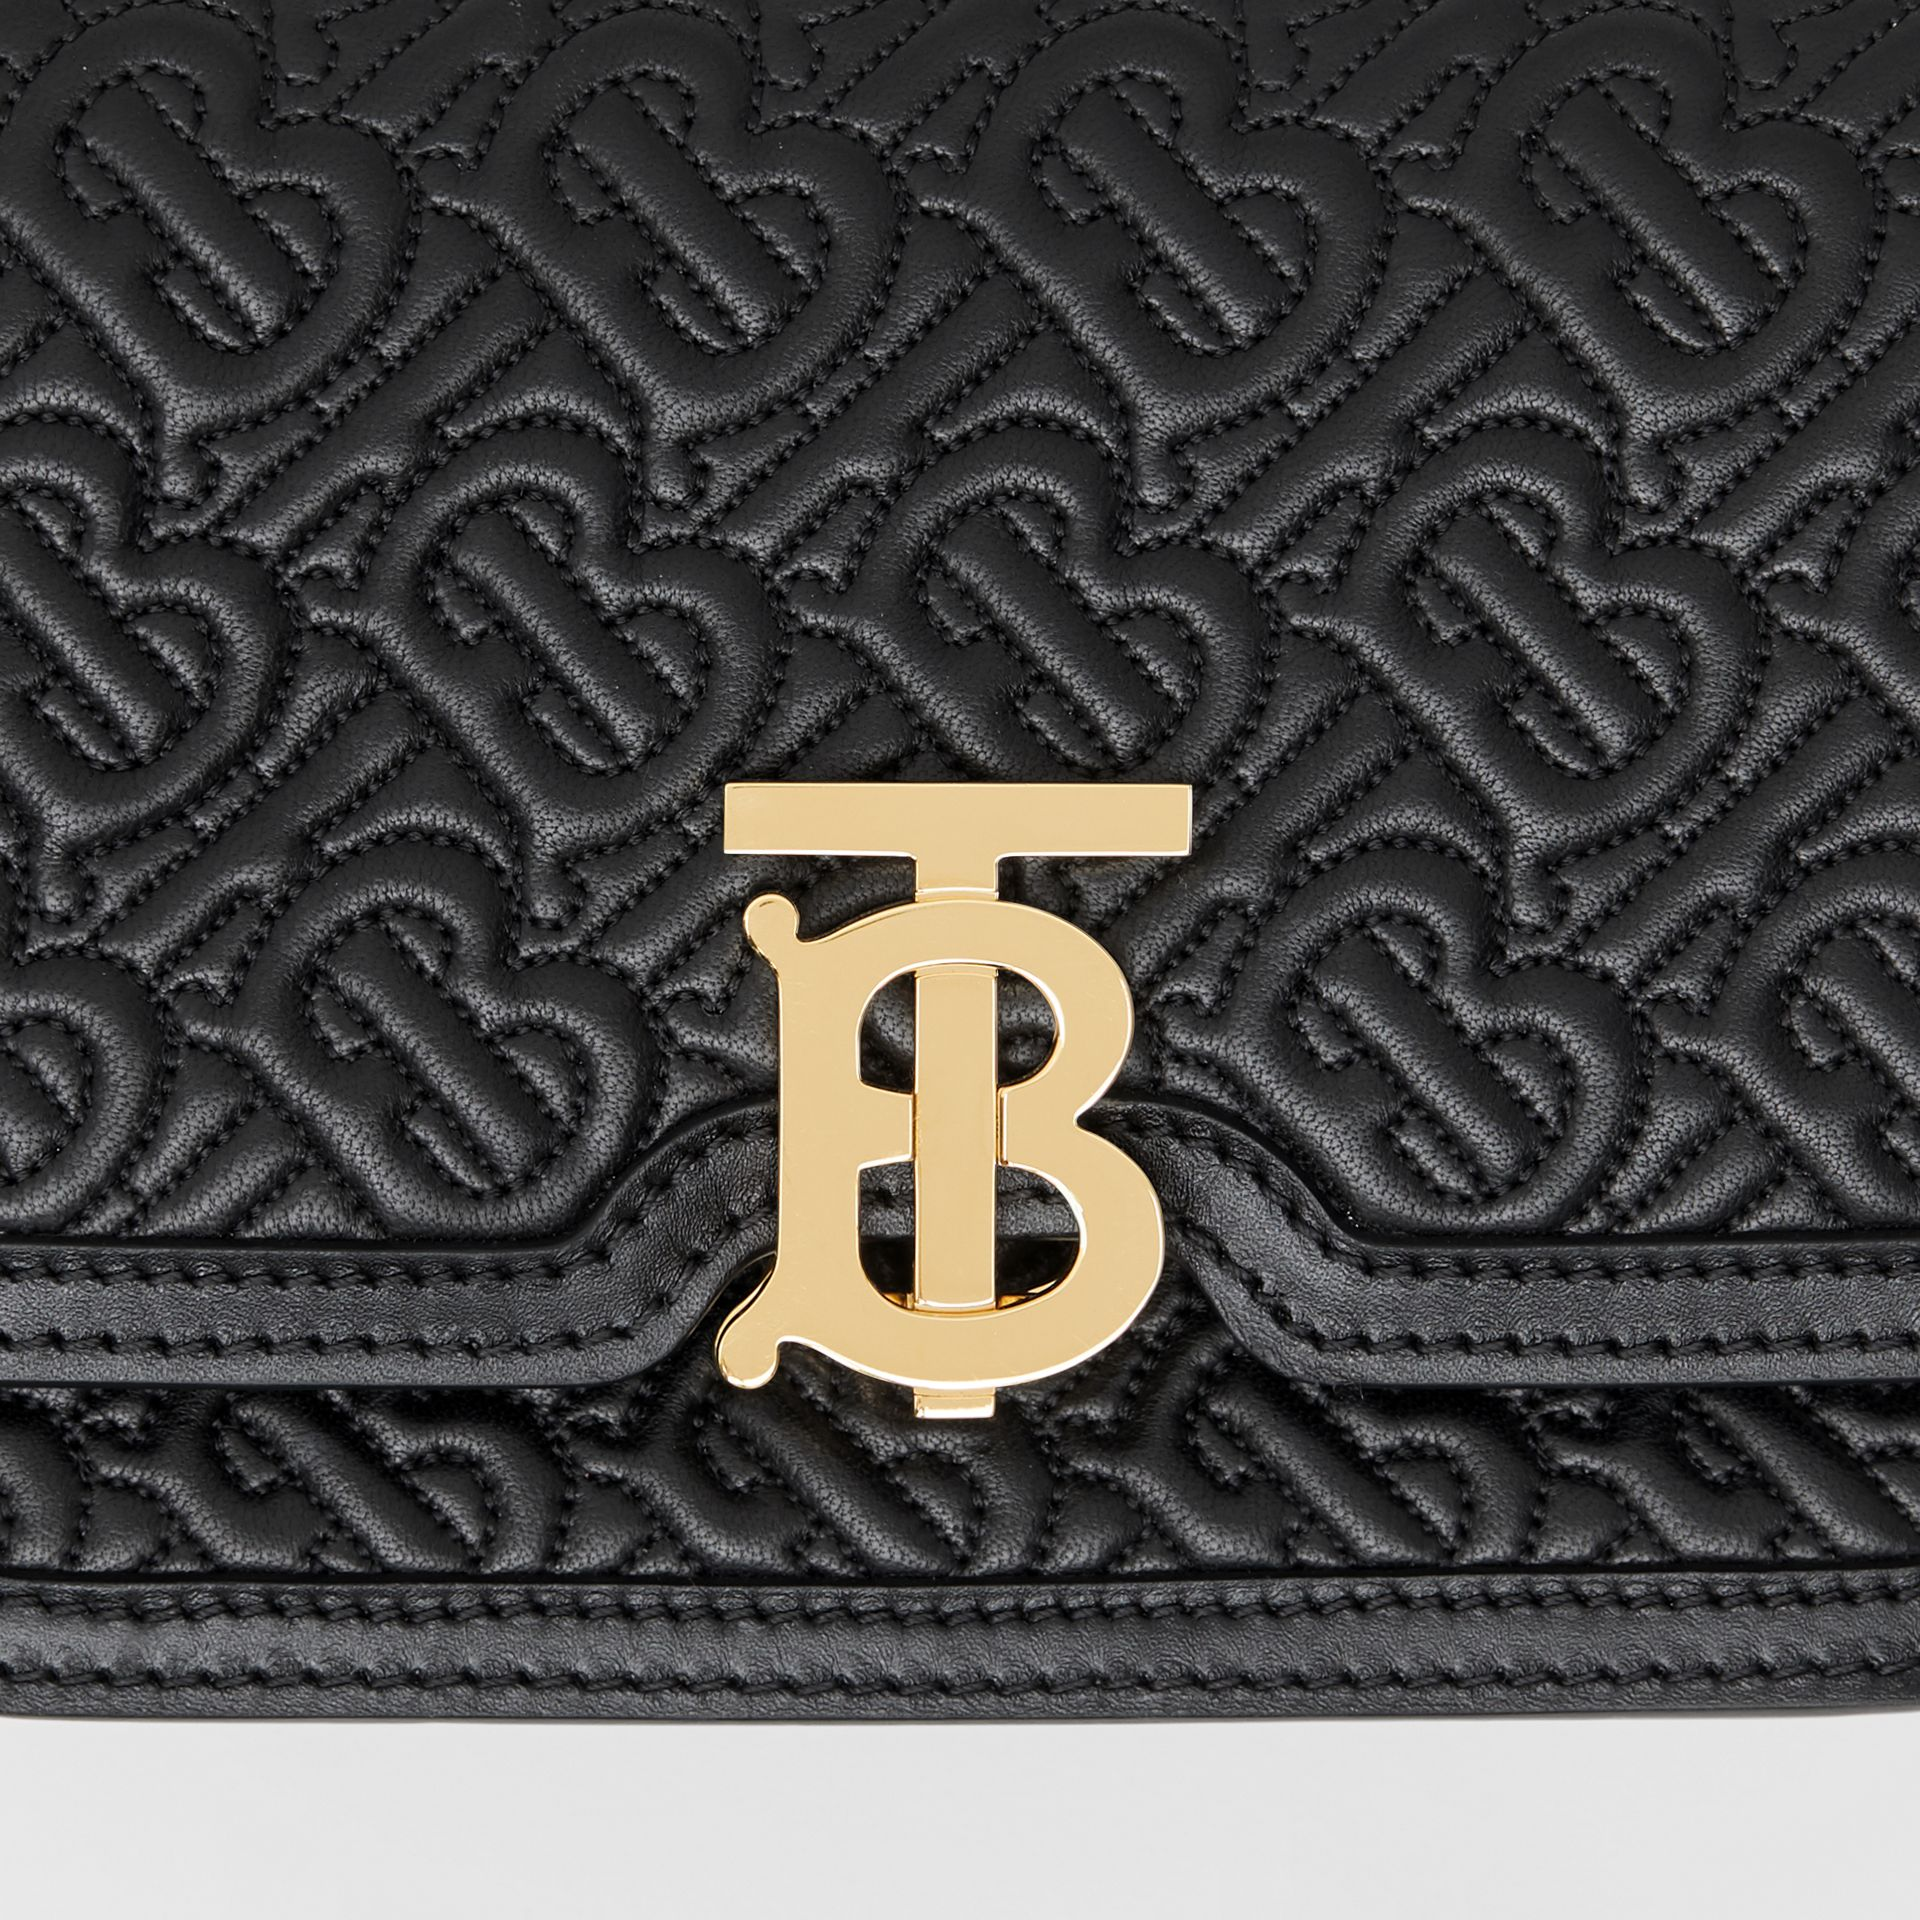 Belted Quilted Monogram Lambskin TB Bag in Black - Women | Burberry Singapore - gallery image 1